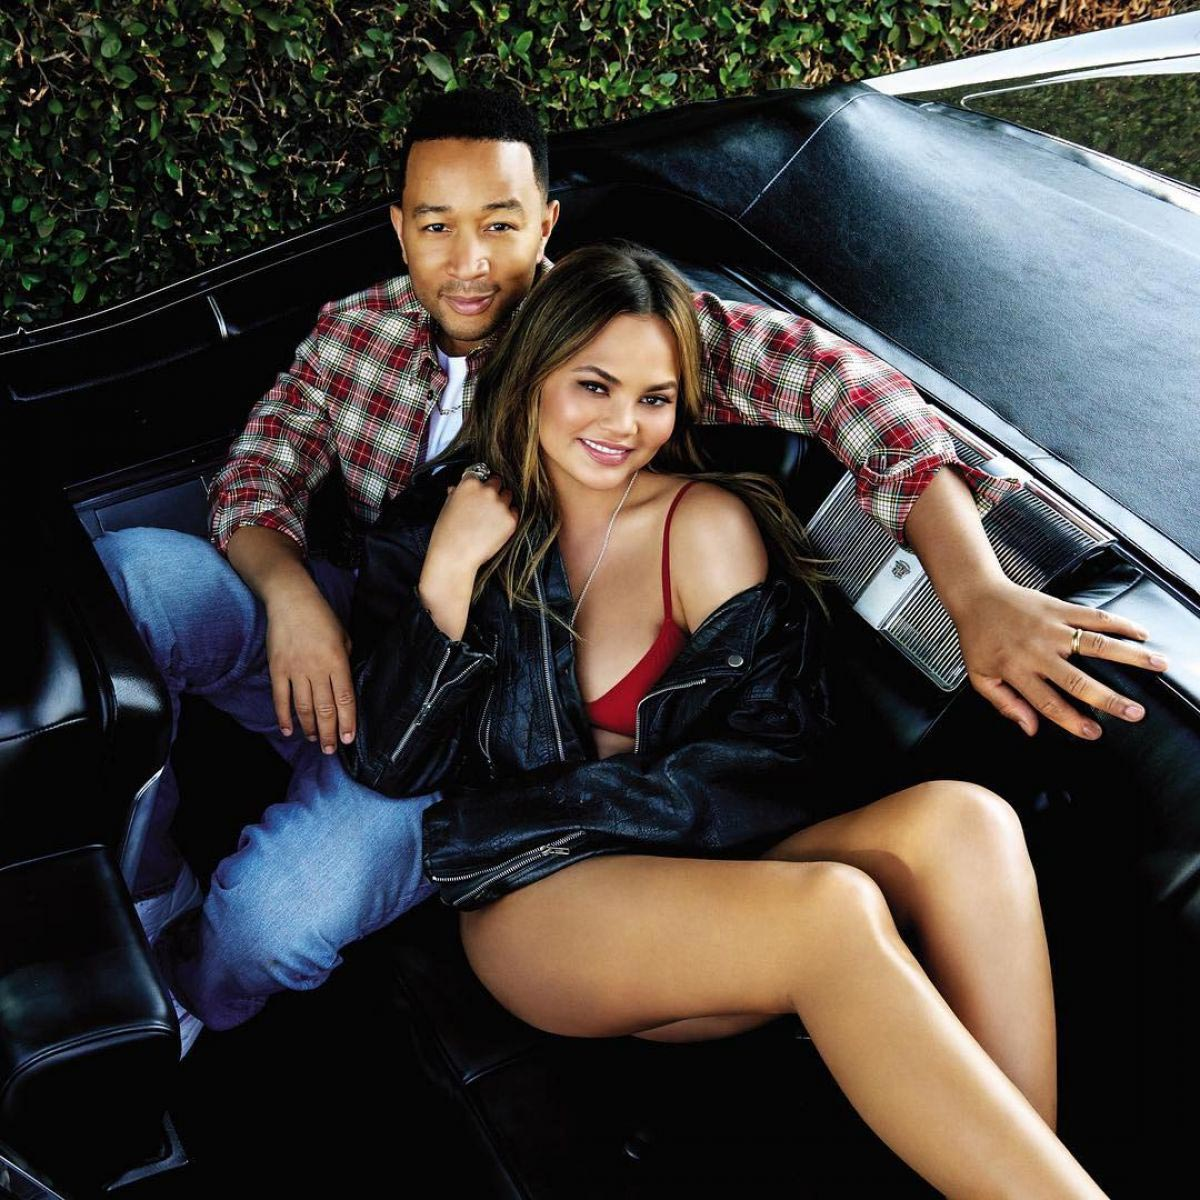 Chrissy Teigen and John Legend in You Magazine, November 2018 1